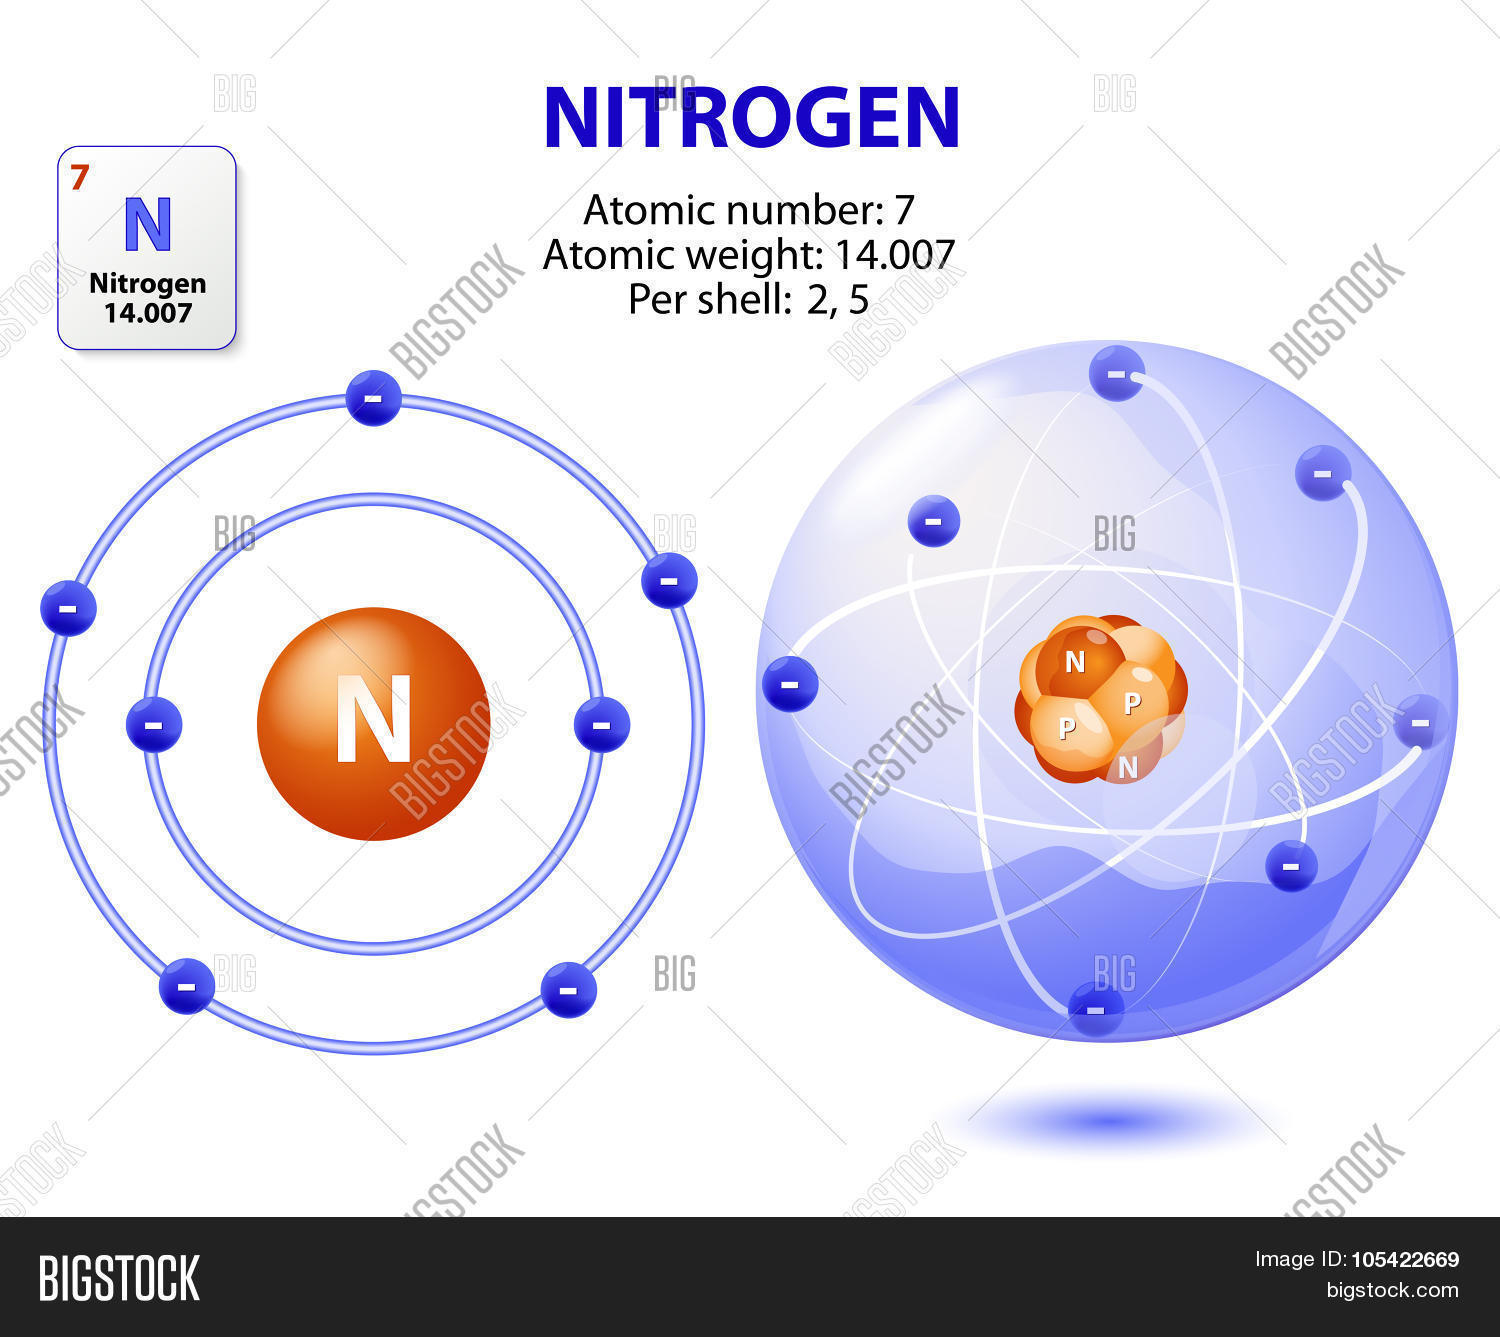 Atom nitrogen vector photo free trial bigstock atom nitrogen ccuart Image collections